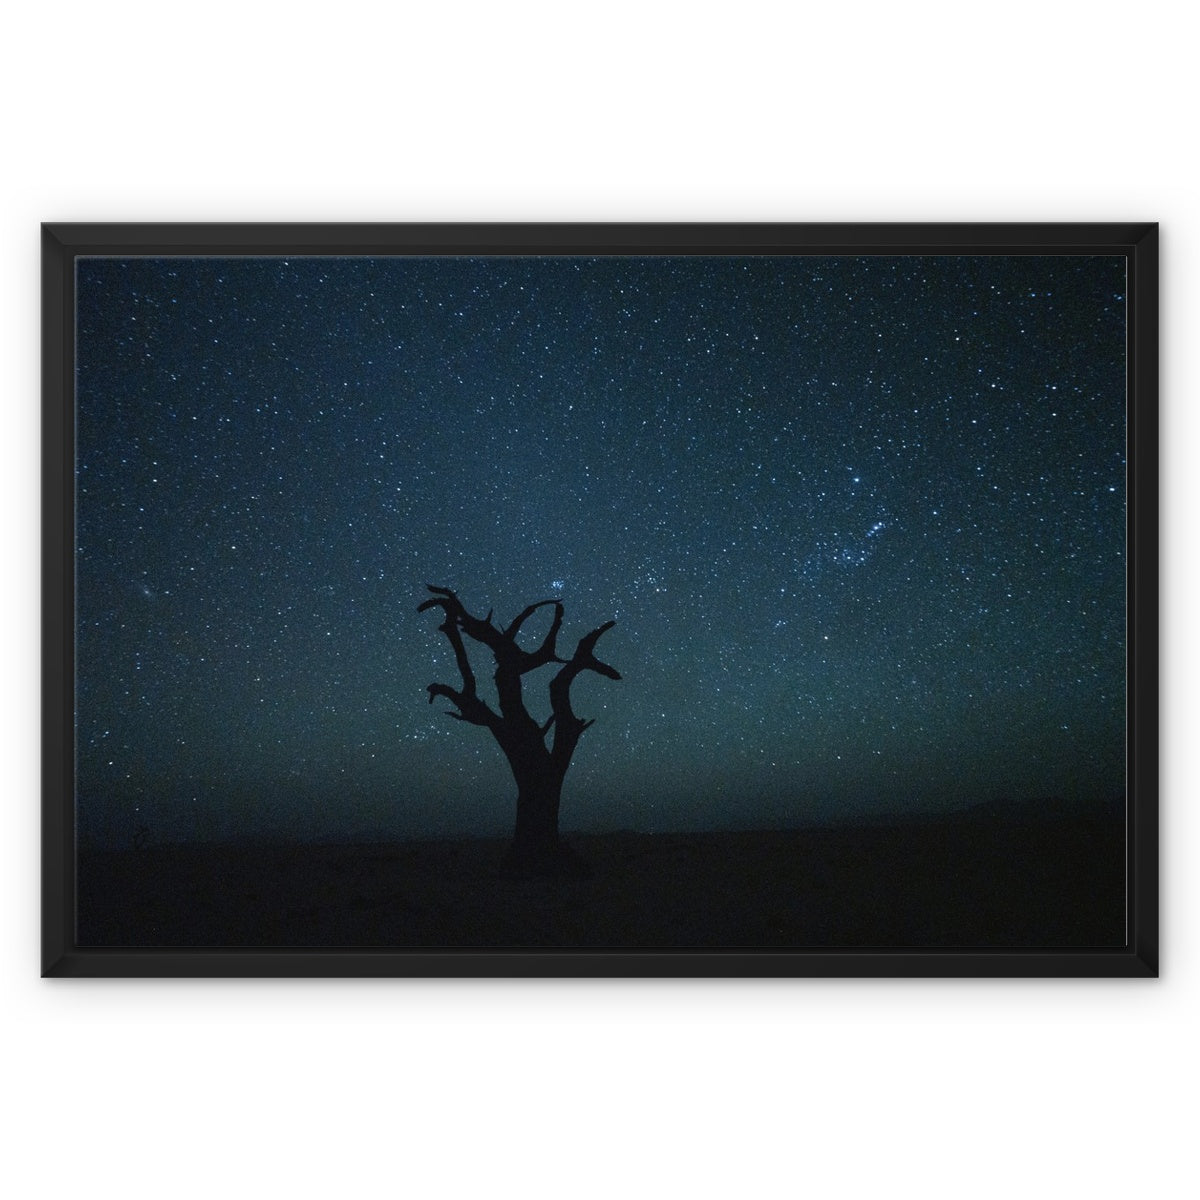 Craig Kolesky_Namibian Nights Framed Canvas